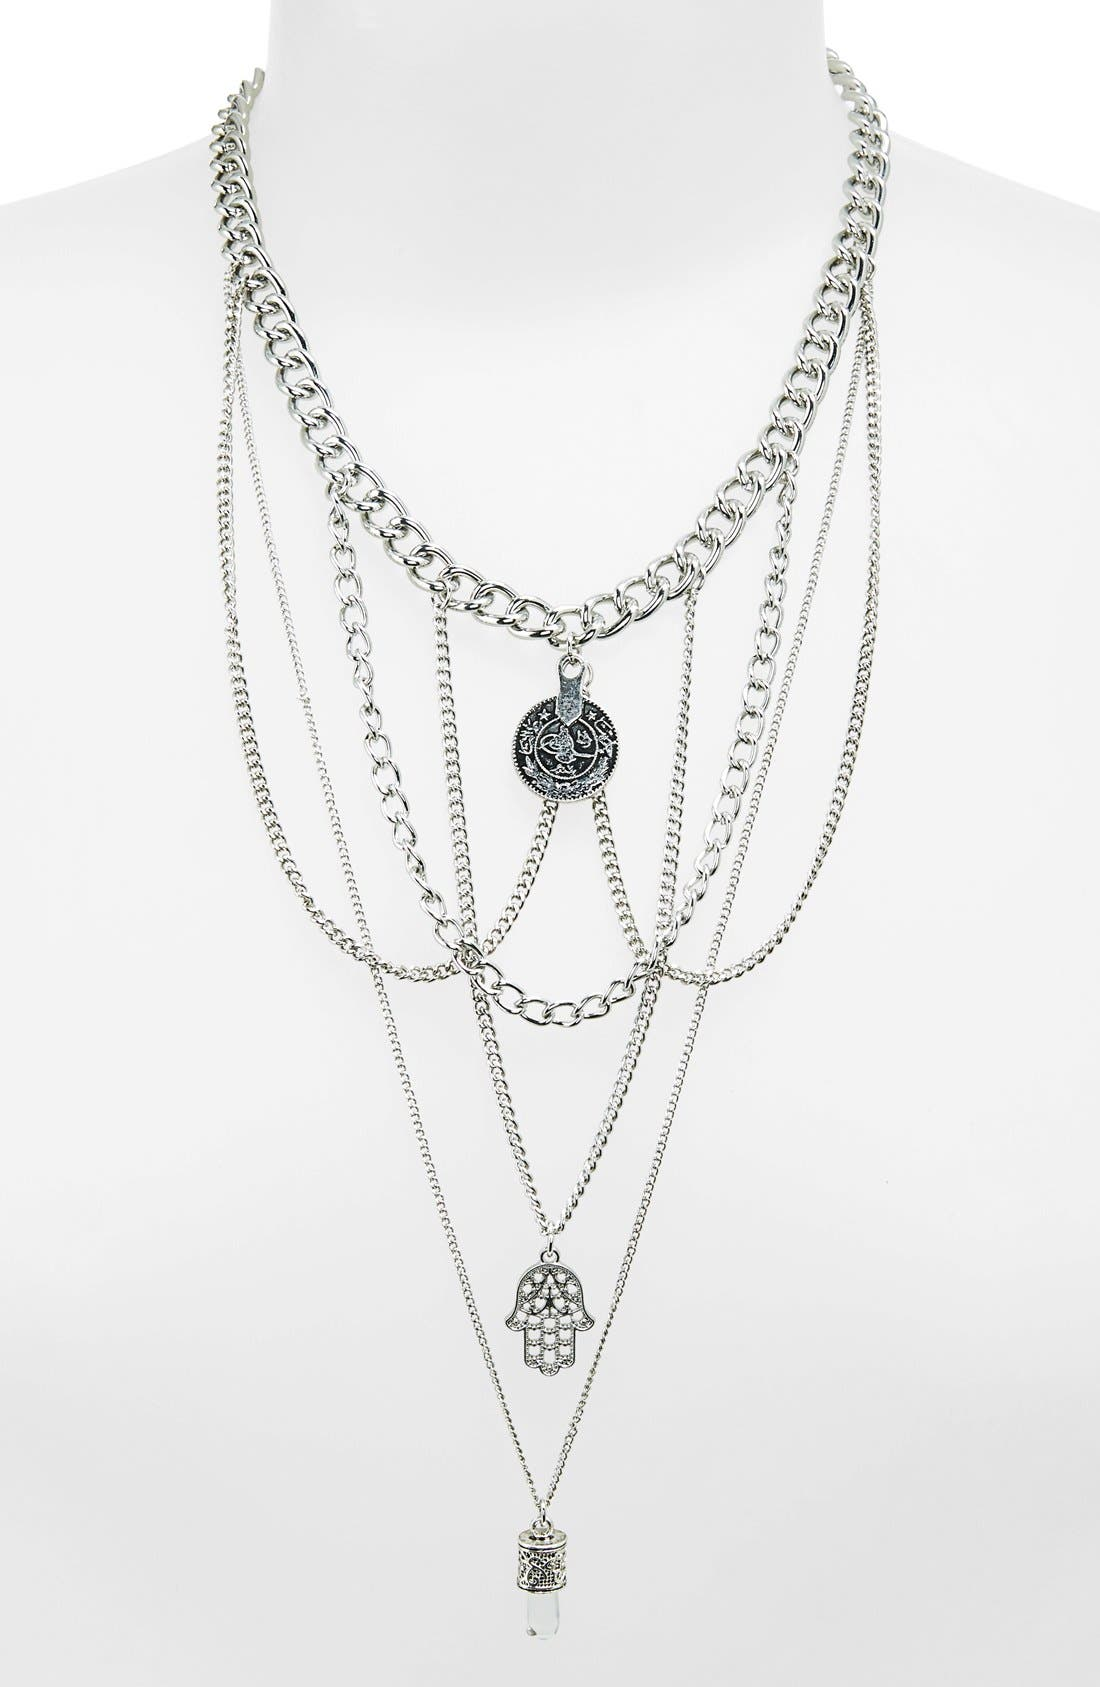 Main Image - Topshop Multi-Row Chain Link Hand of Fatima Charm Necklace